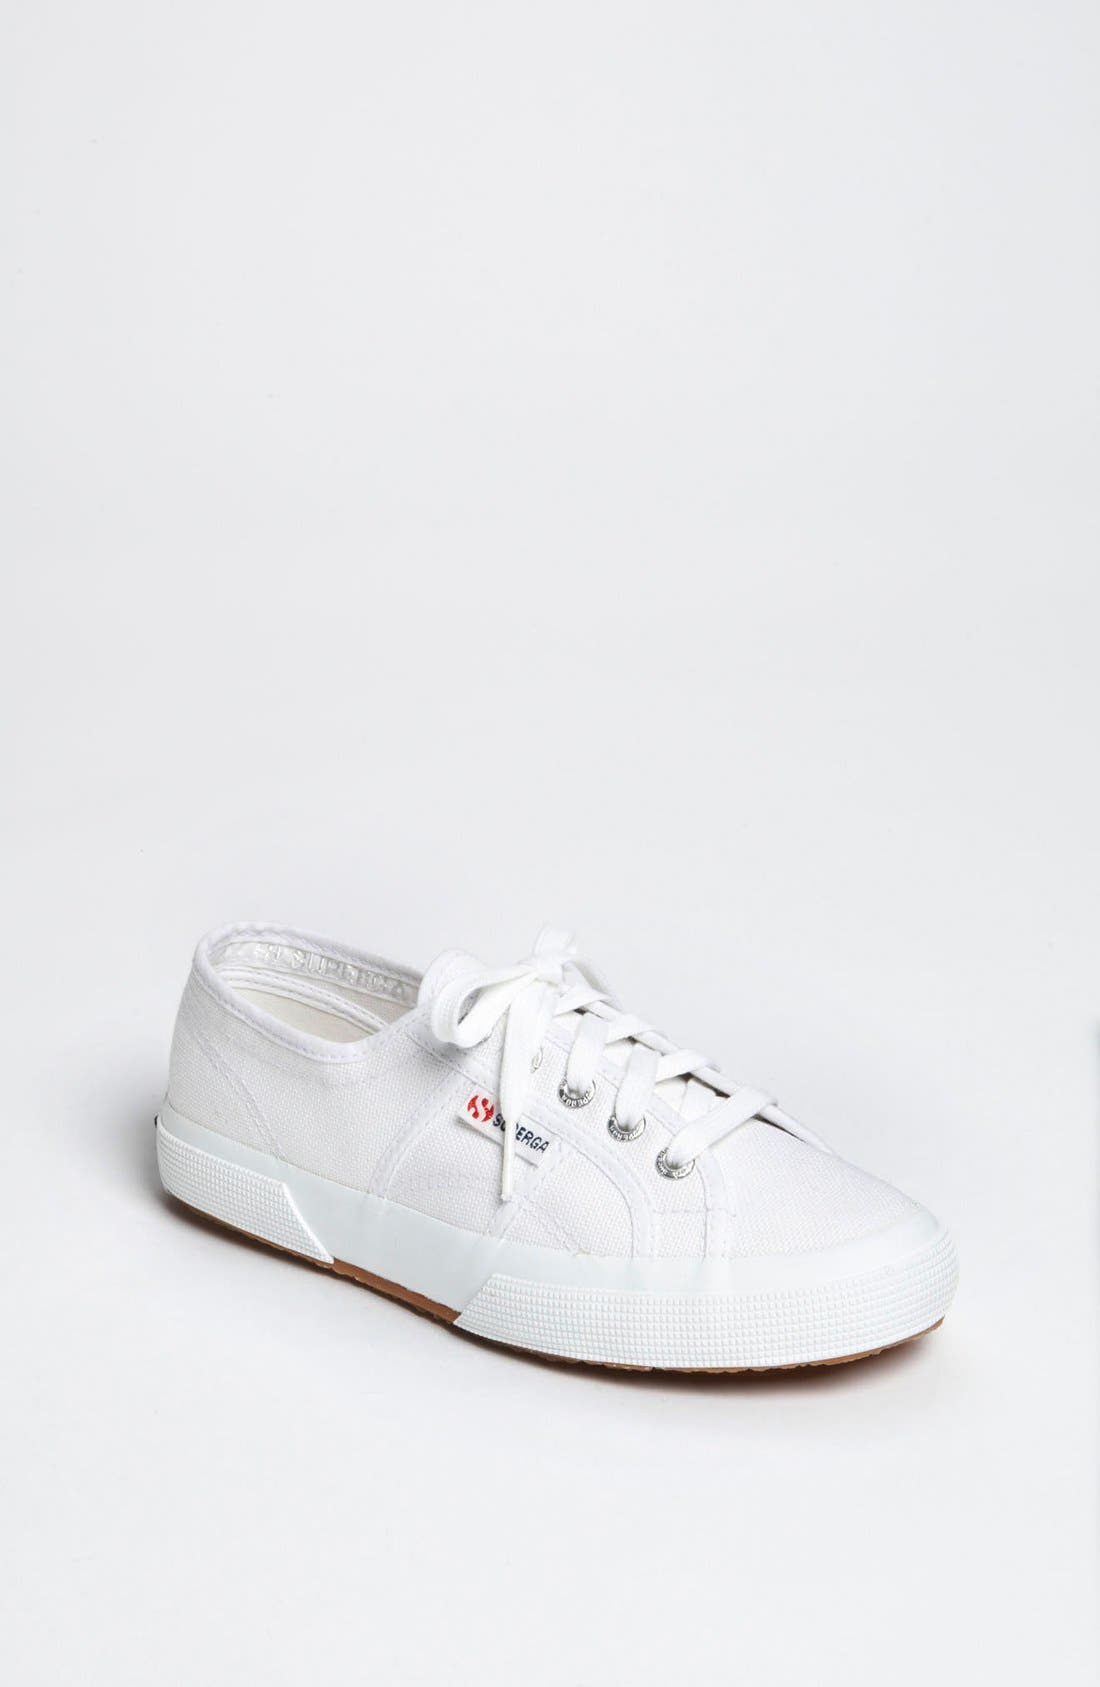 Alternate Image 1 Selected - Superga 'Cotu' Sneaker (Women)